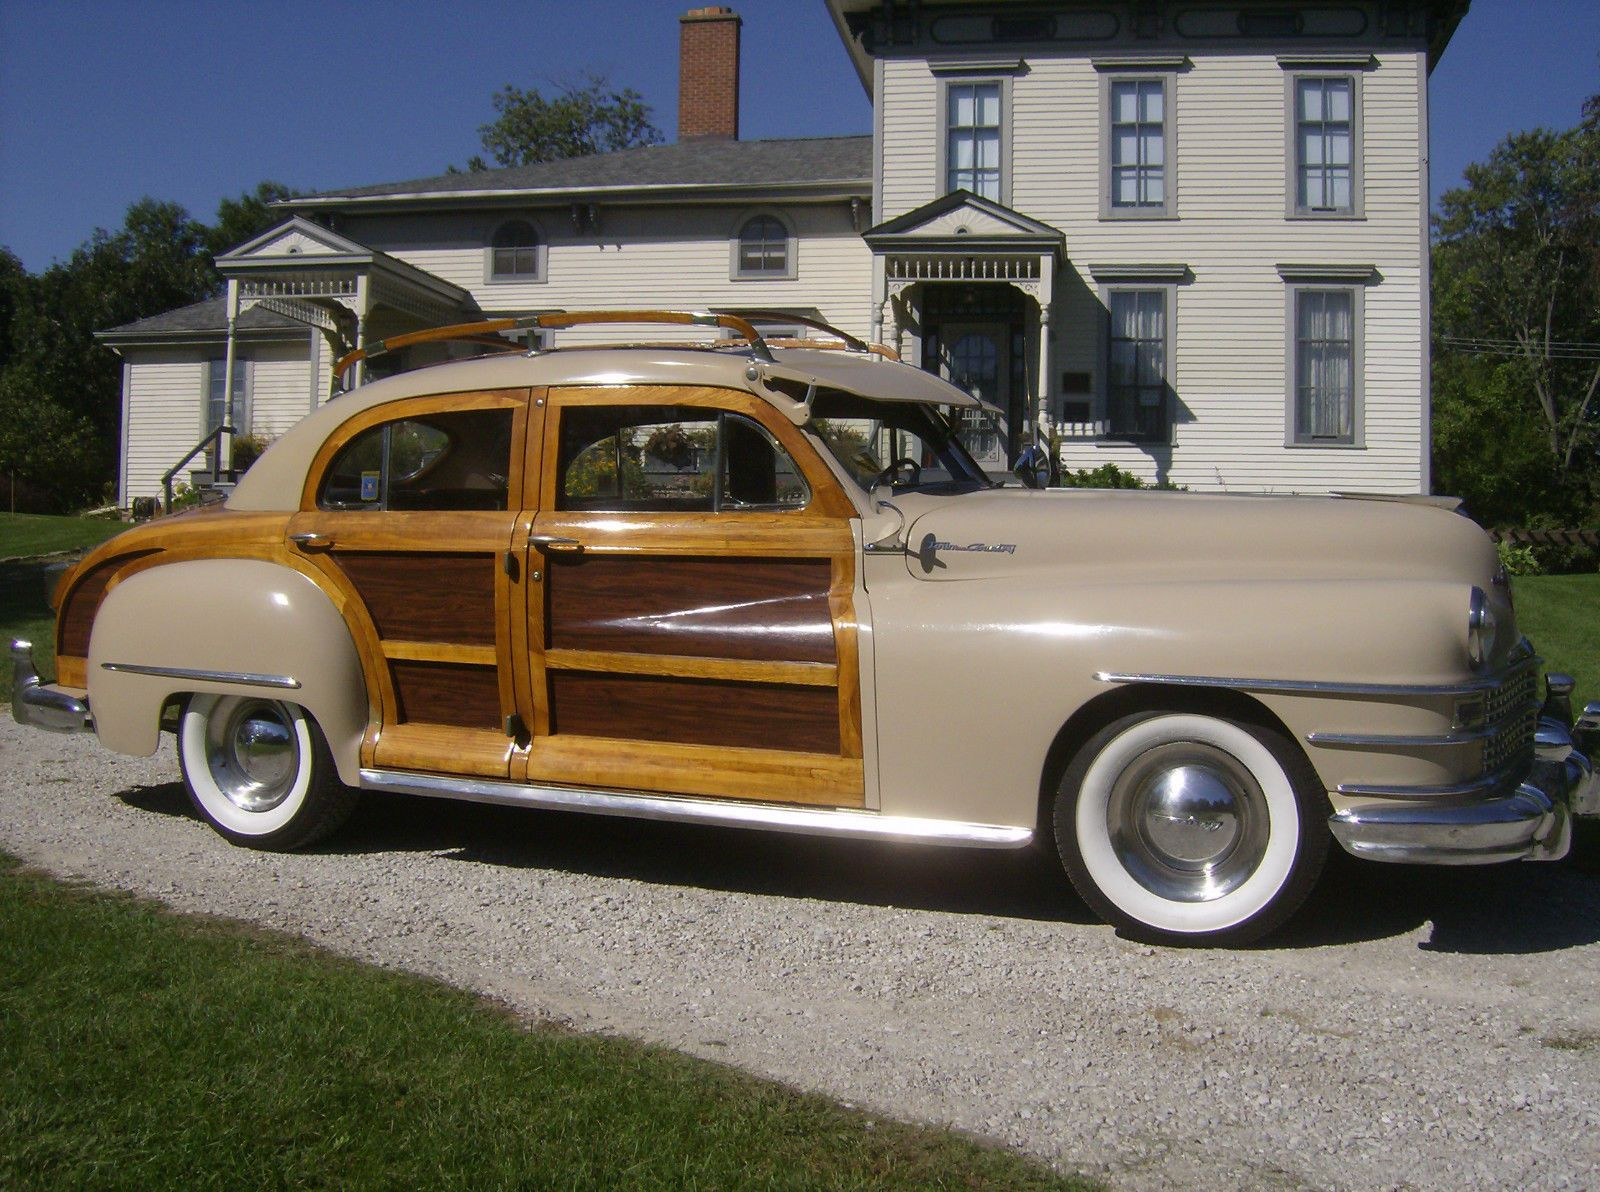 48 Chrysler Town And Country 4 Door Sedan With Wood Roof Rack